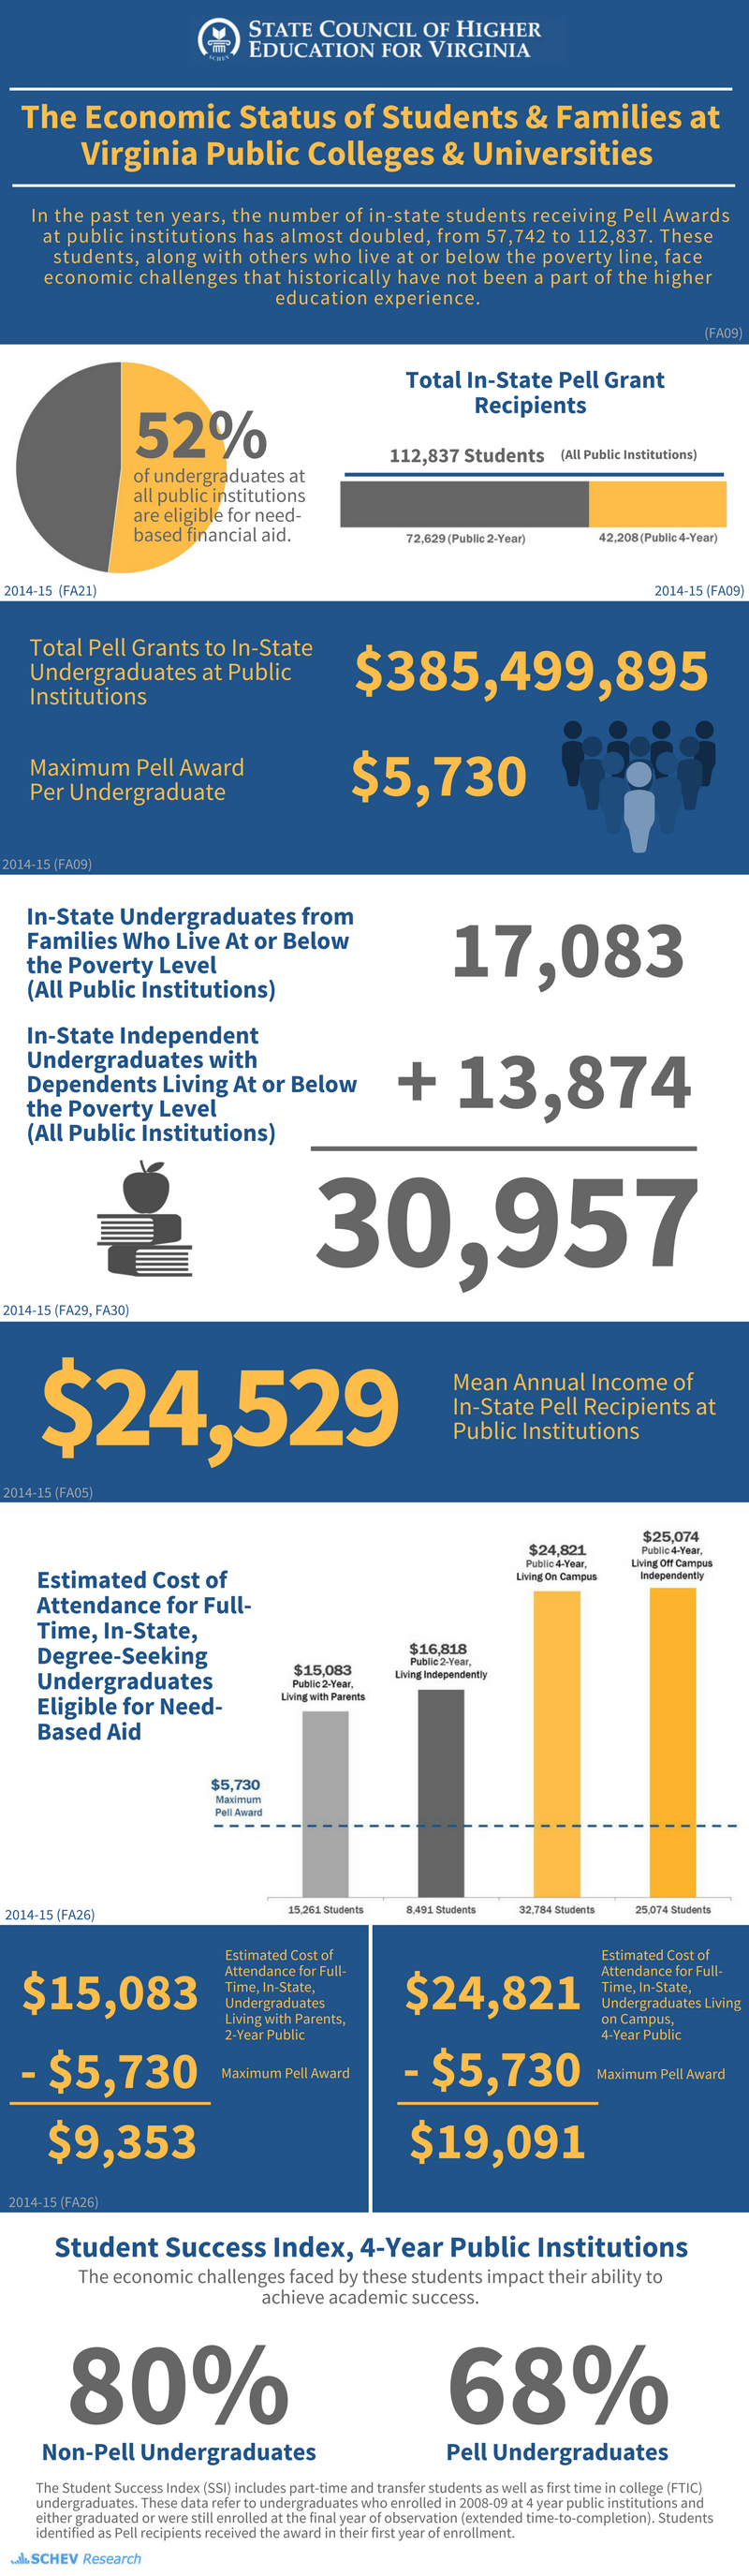 Infographic: The State Council of Higher Education The Economic Status of Students and Families at Virginia Public Colleges & Universities In the past ten years, the number of in-state students receiving Pell Awards at public institutions has almost doubled, from 57,742 to 112,837. These students, along with others who live at or below the poverty line, face economic challenges that historically have not a part of the higher education experience.<br /><br />52% of undergraduate at public institutions are eligible for need-based financial aid. 112,837 Total In-State Pell Grant Recipients 72,629 at the public two-year colleges 42,208 at the public four-year colleges. $385,499,895 Total Pell Grants to In-State Undergraduates at Public Institutions $5,730 Maximum Pell Award Per Undergraduate 18,812 Undergraduates from Families Who Live At or Below the Poverty Level (Public Institutions) 14,422 Independent Undergraduates with Dependents Living At or Below the Poverty Level (Public Institutions) 33,234 student-families from, or in, poverty $24,529 Mean Annual Income of In-State Pell Recipients at Public Institutions $15,083 Average annual estimated cost of attendance for a full-time, in-state undergraduate, living with parents at a public two-year, after a maximum Pell award of $5,730, there is $9,353  remaining. $24,821 Average annual estimated cost of attendance for a full-time, in-state undergraduate, living with parents at a public four-year, after a maximum Pell award of $5,730, there is $19,091  remaining.<br /><br />SCHEV's Student Success Index at four-year public institutions is 80% for non-Pell undergraduates and 68% for Pell students. The Student Success Index (SSI) includes part-time and transfer students as well as first-time in college (FTIC) undergraduates. These data refer to undergraduate enrolled in 2008-09 at 4 year public institutions and either graduated or were still enrolled at final year of observation  (extended time-to-completion). Students identified as Pell recipients received the award in their first year of enrollment.